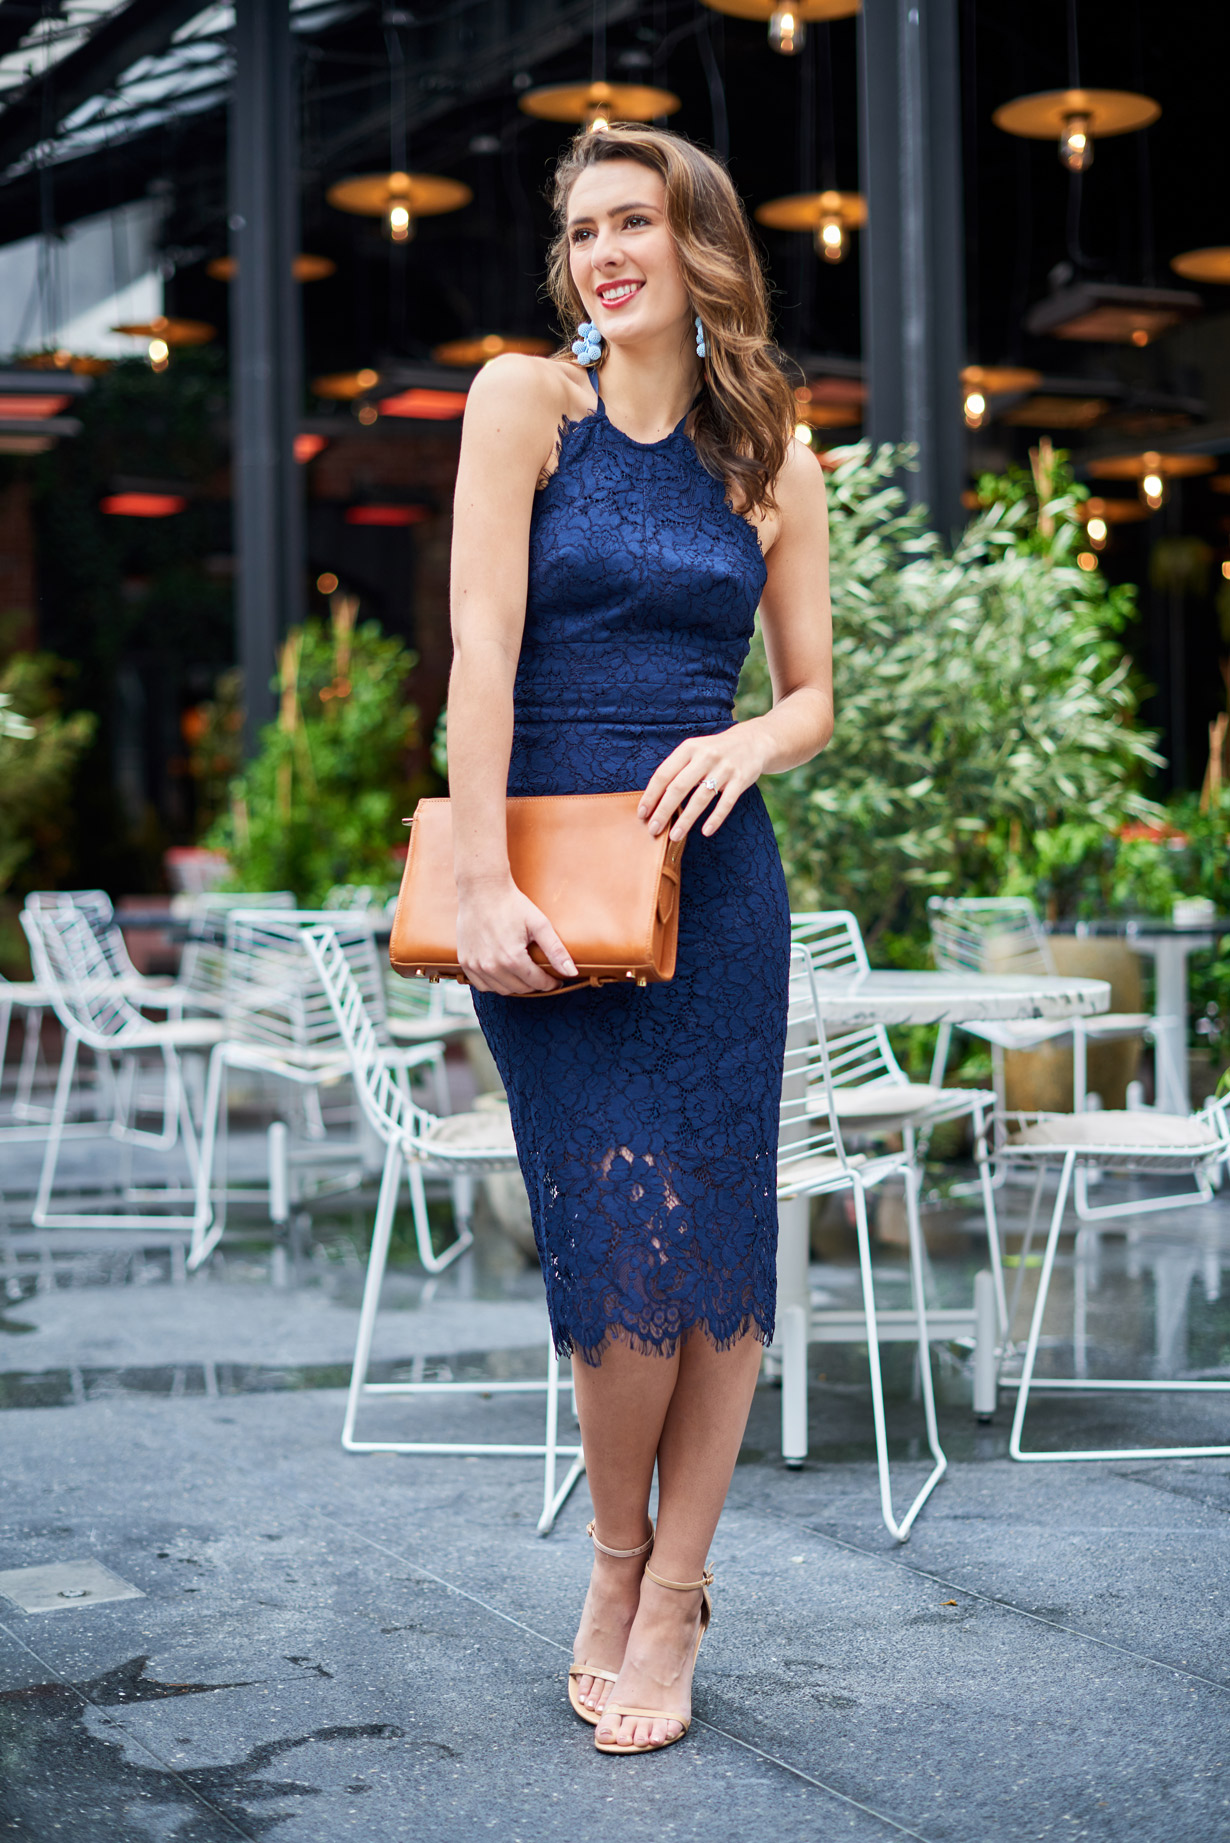 Shoes to wear with navy blue lace dress style guru for What kind of shoes to wear with wedding dress